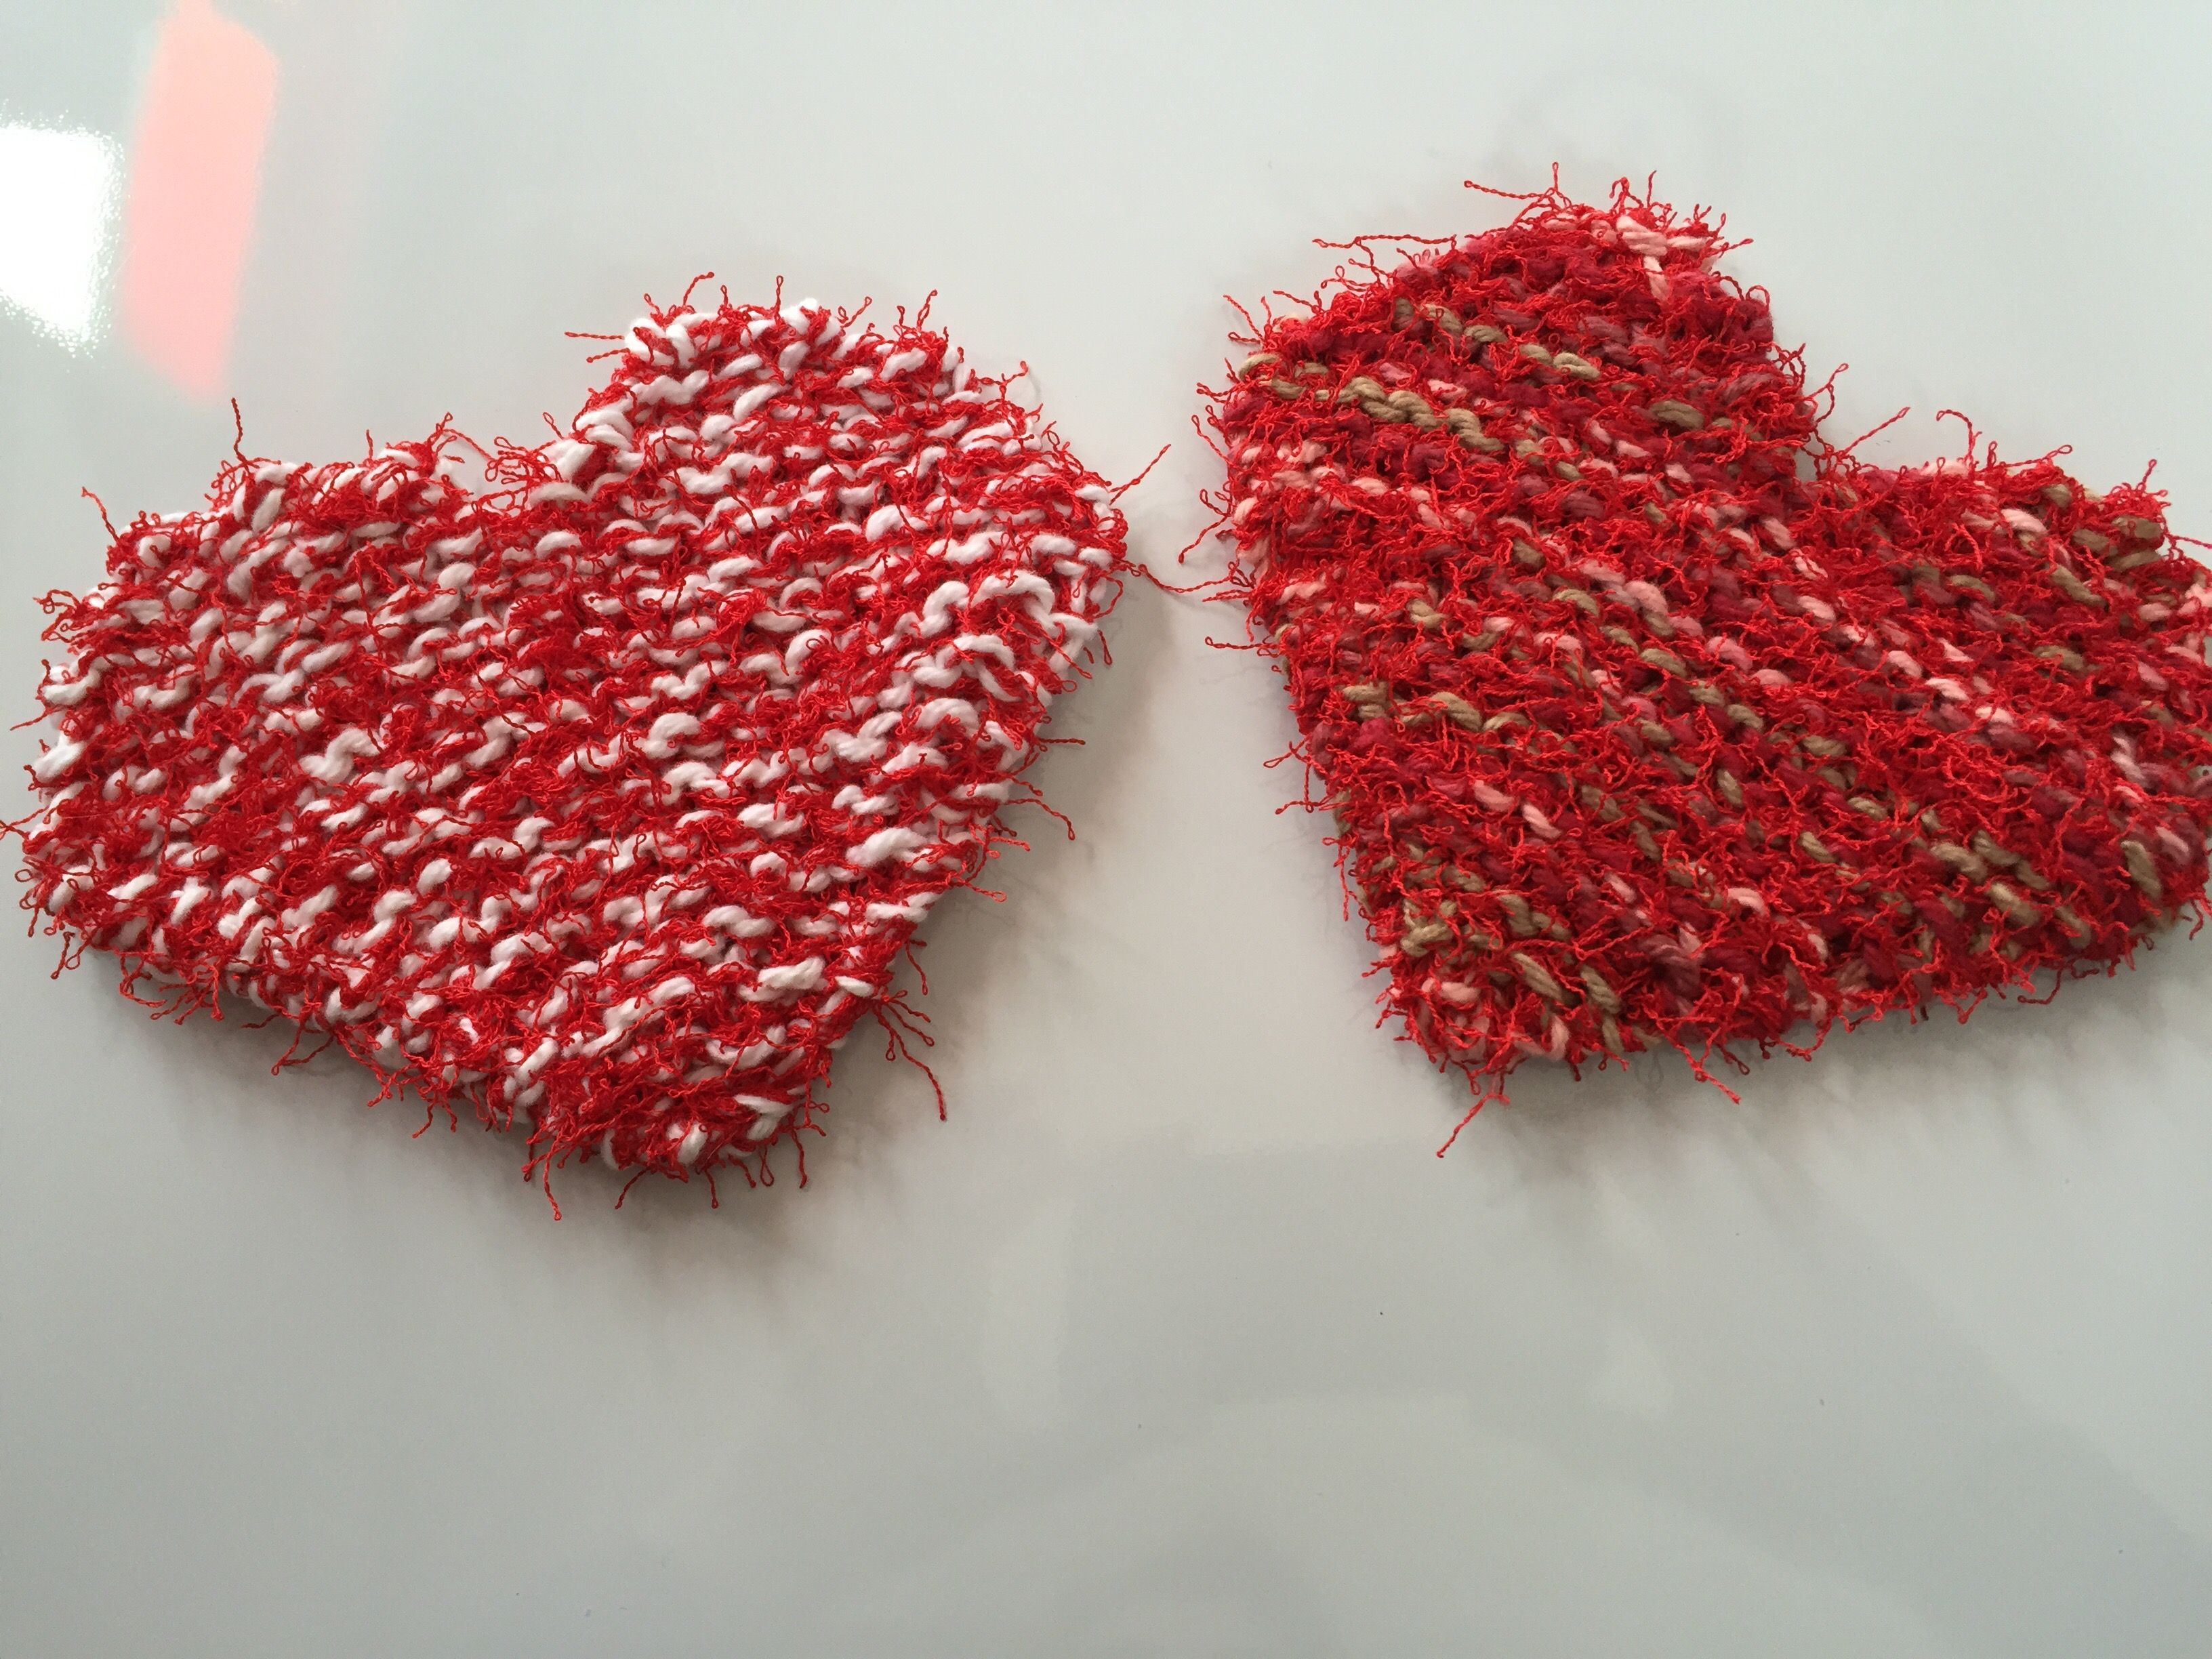 Valentine heart scrubby pattern scrubby yarn garter stitch and an easy garter stitch heart knitting pattern using the polyester scrubby yarn bankloansurffo Image collections